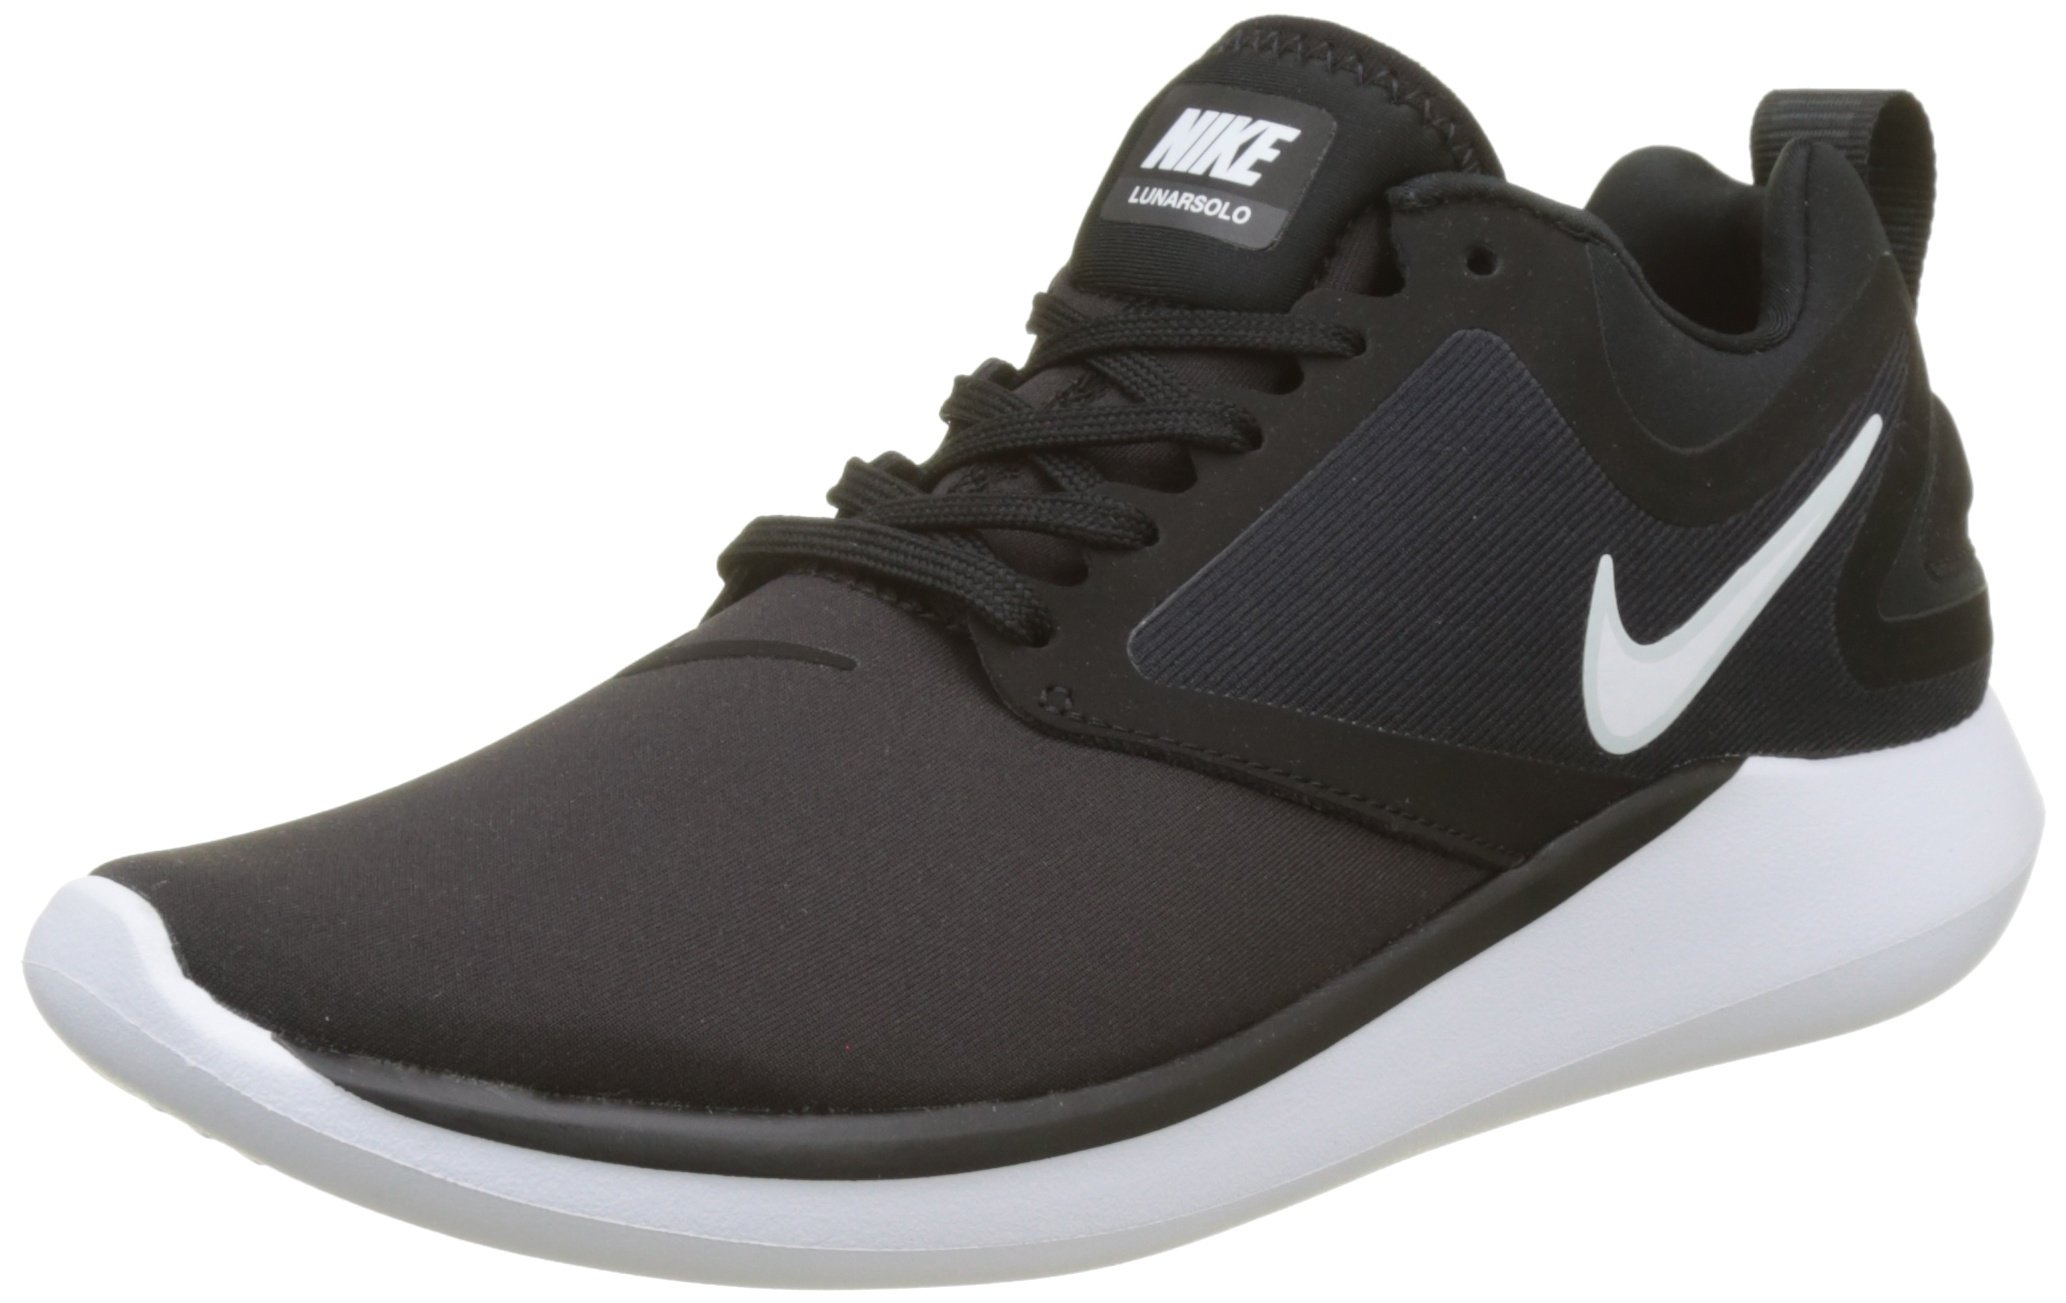 Anthracite Ankle-High Fabric Running